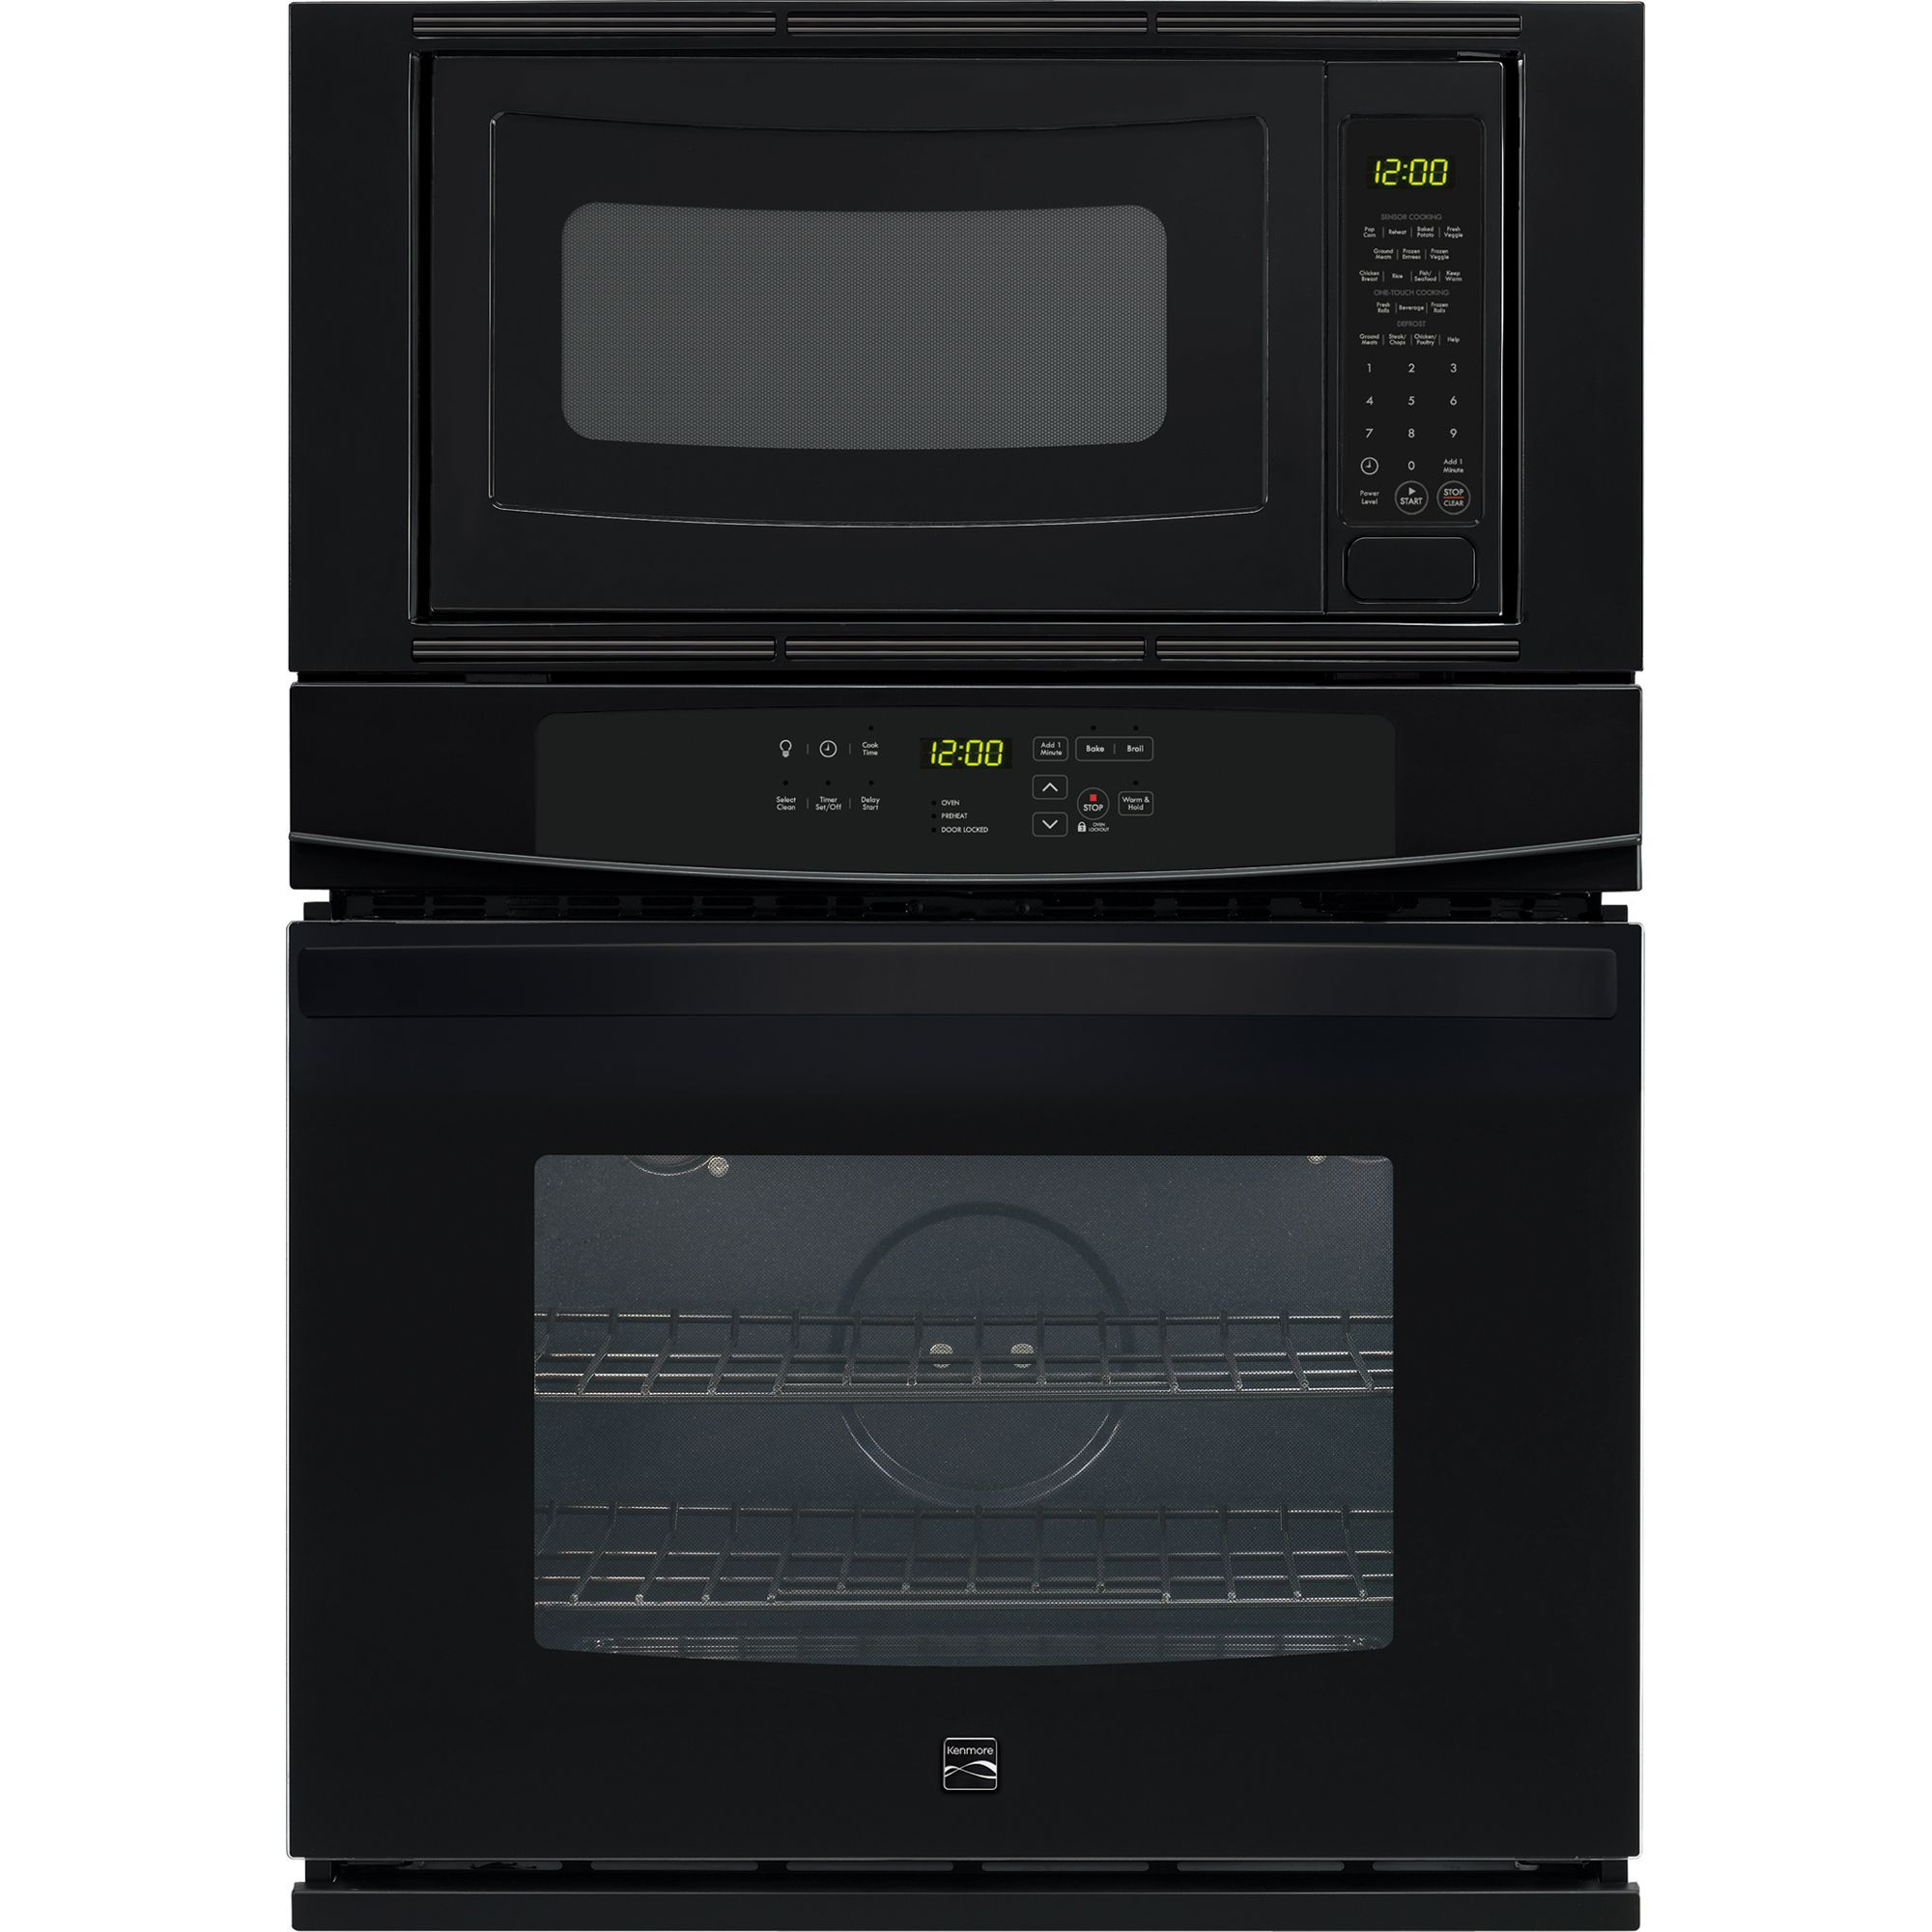 Kenmore Wall Oven - Exploring Mars on